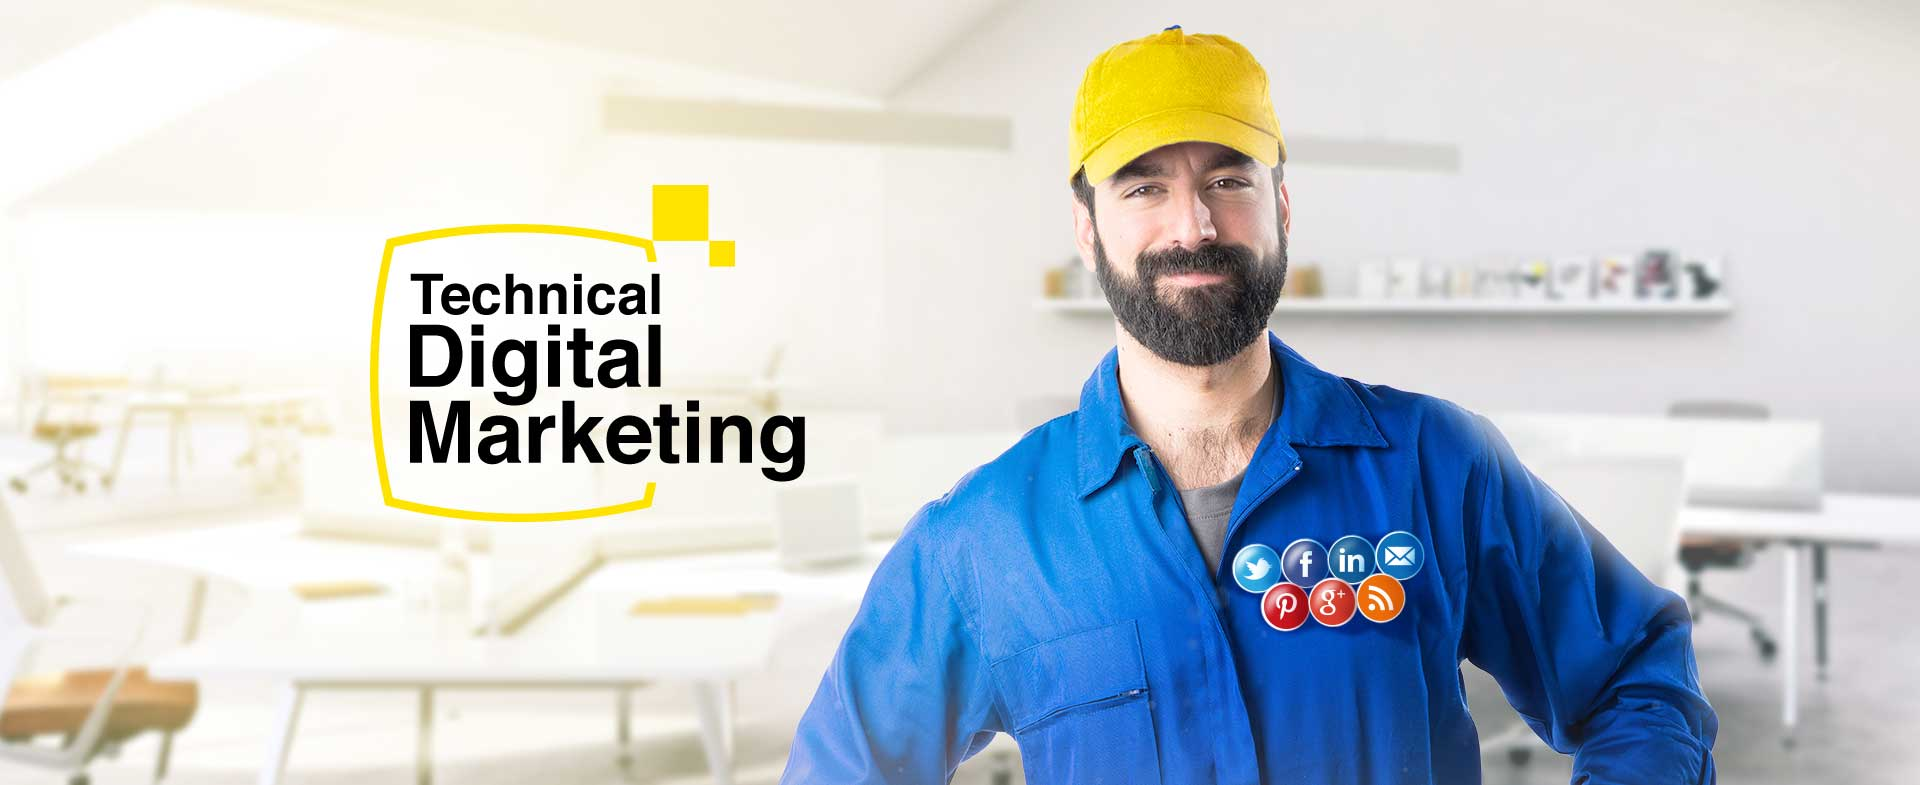 Technical digital marketing